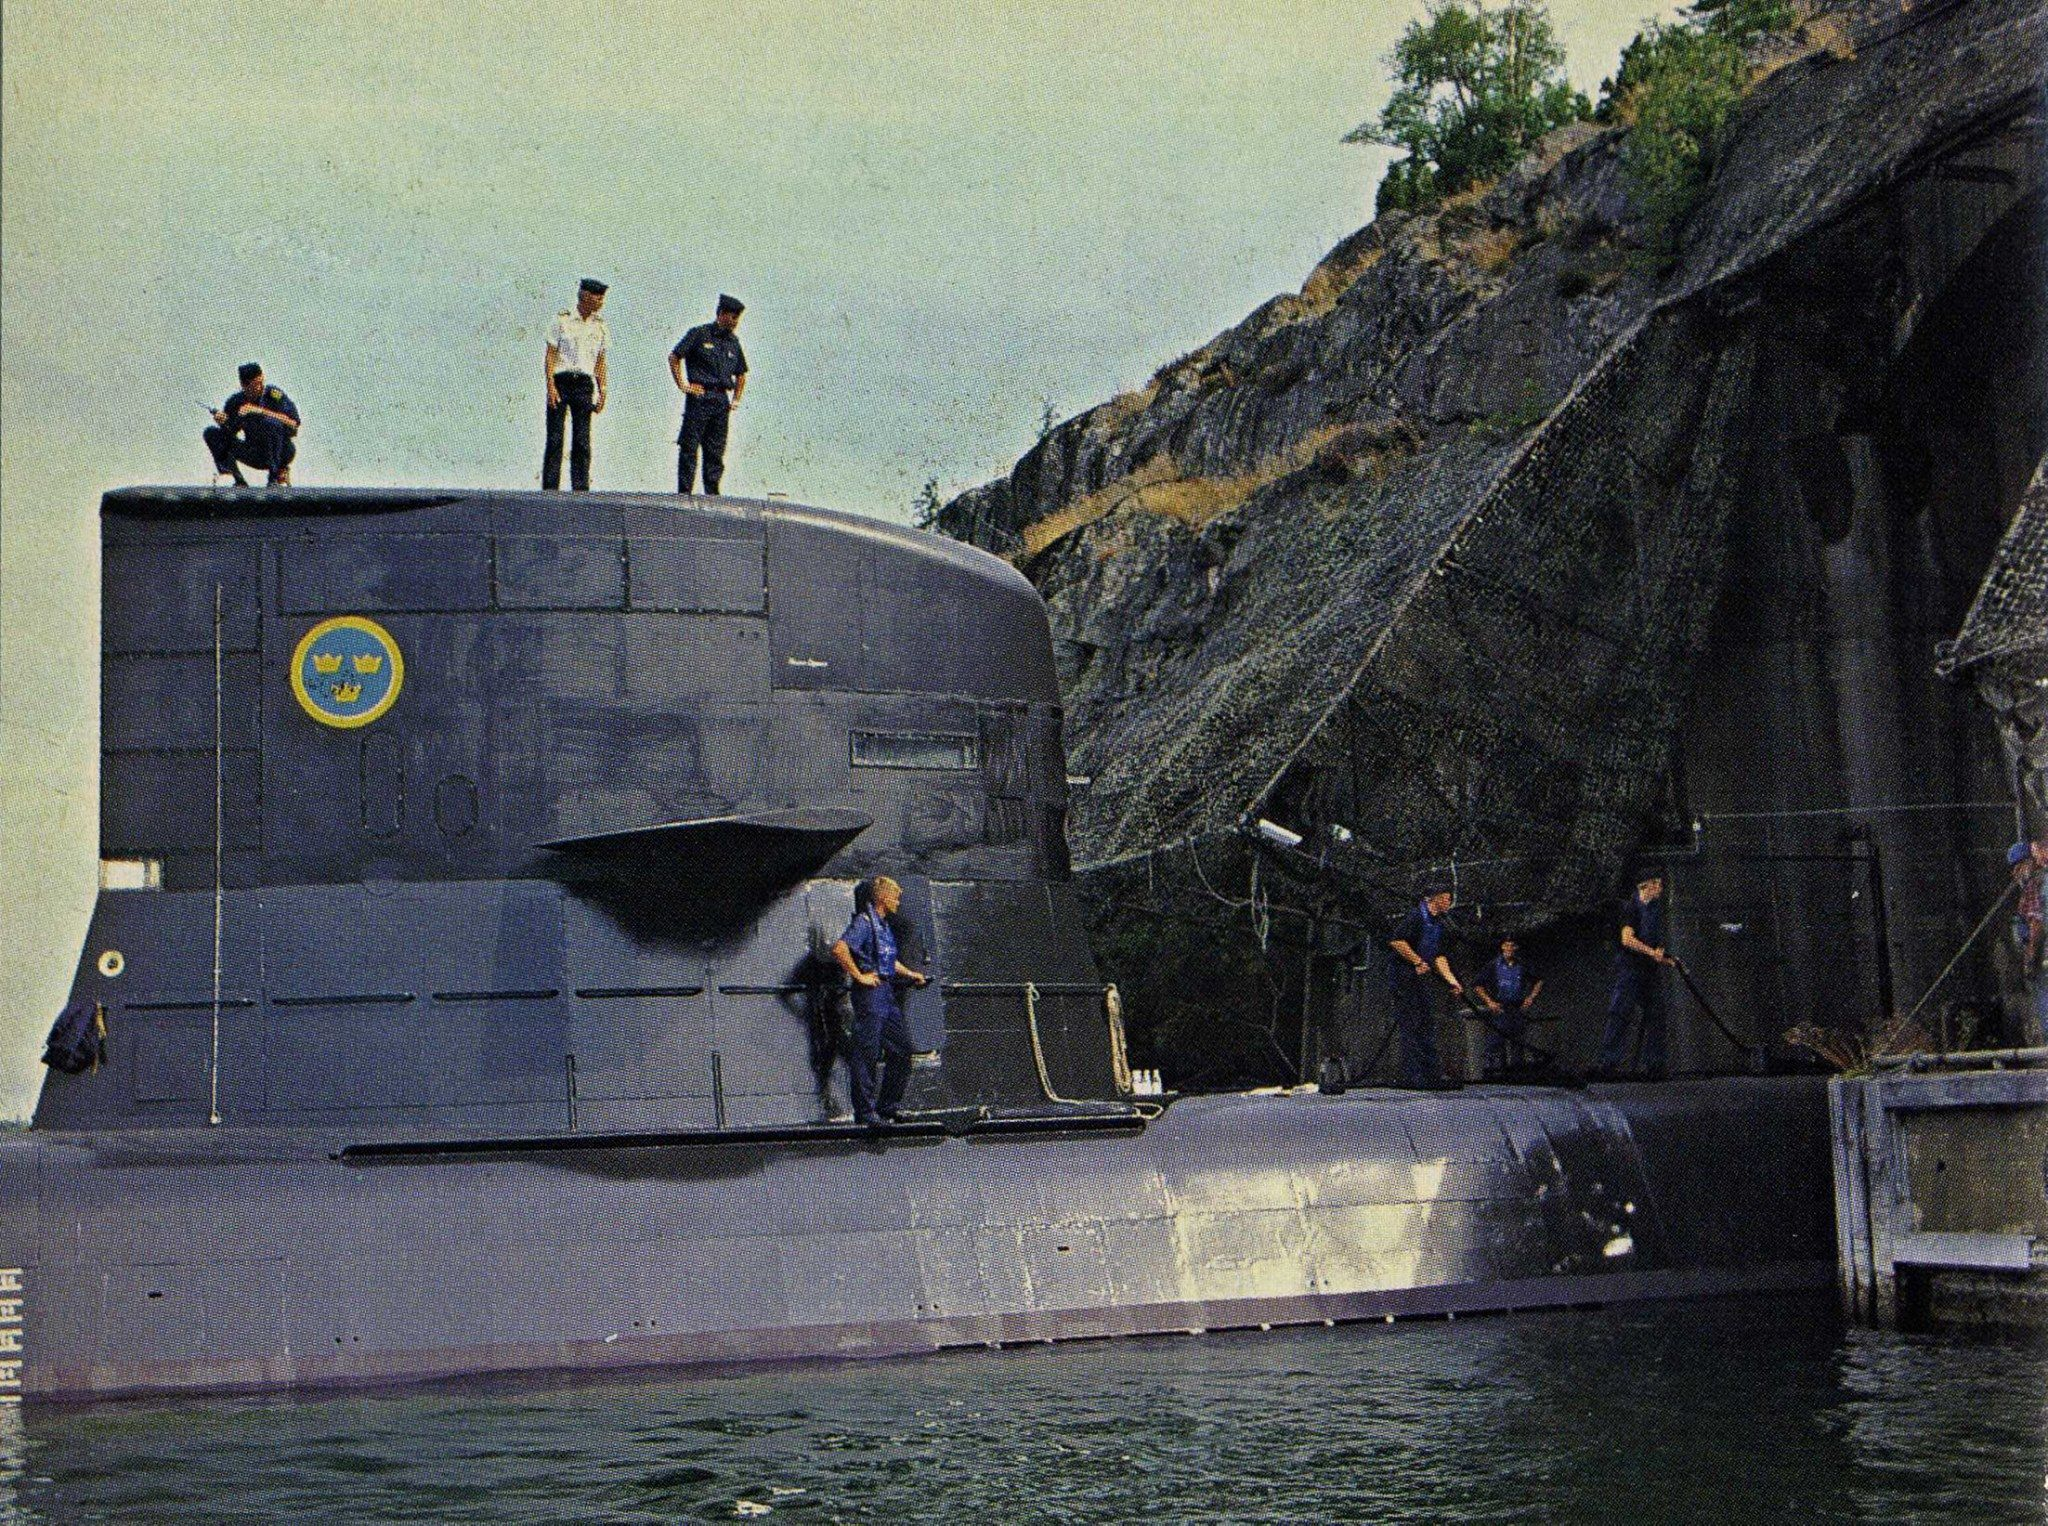 A Västergötland-class submarine heading into the Muskö underground ...